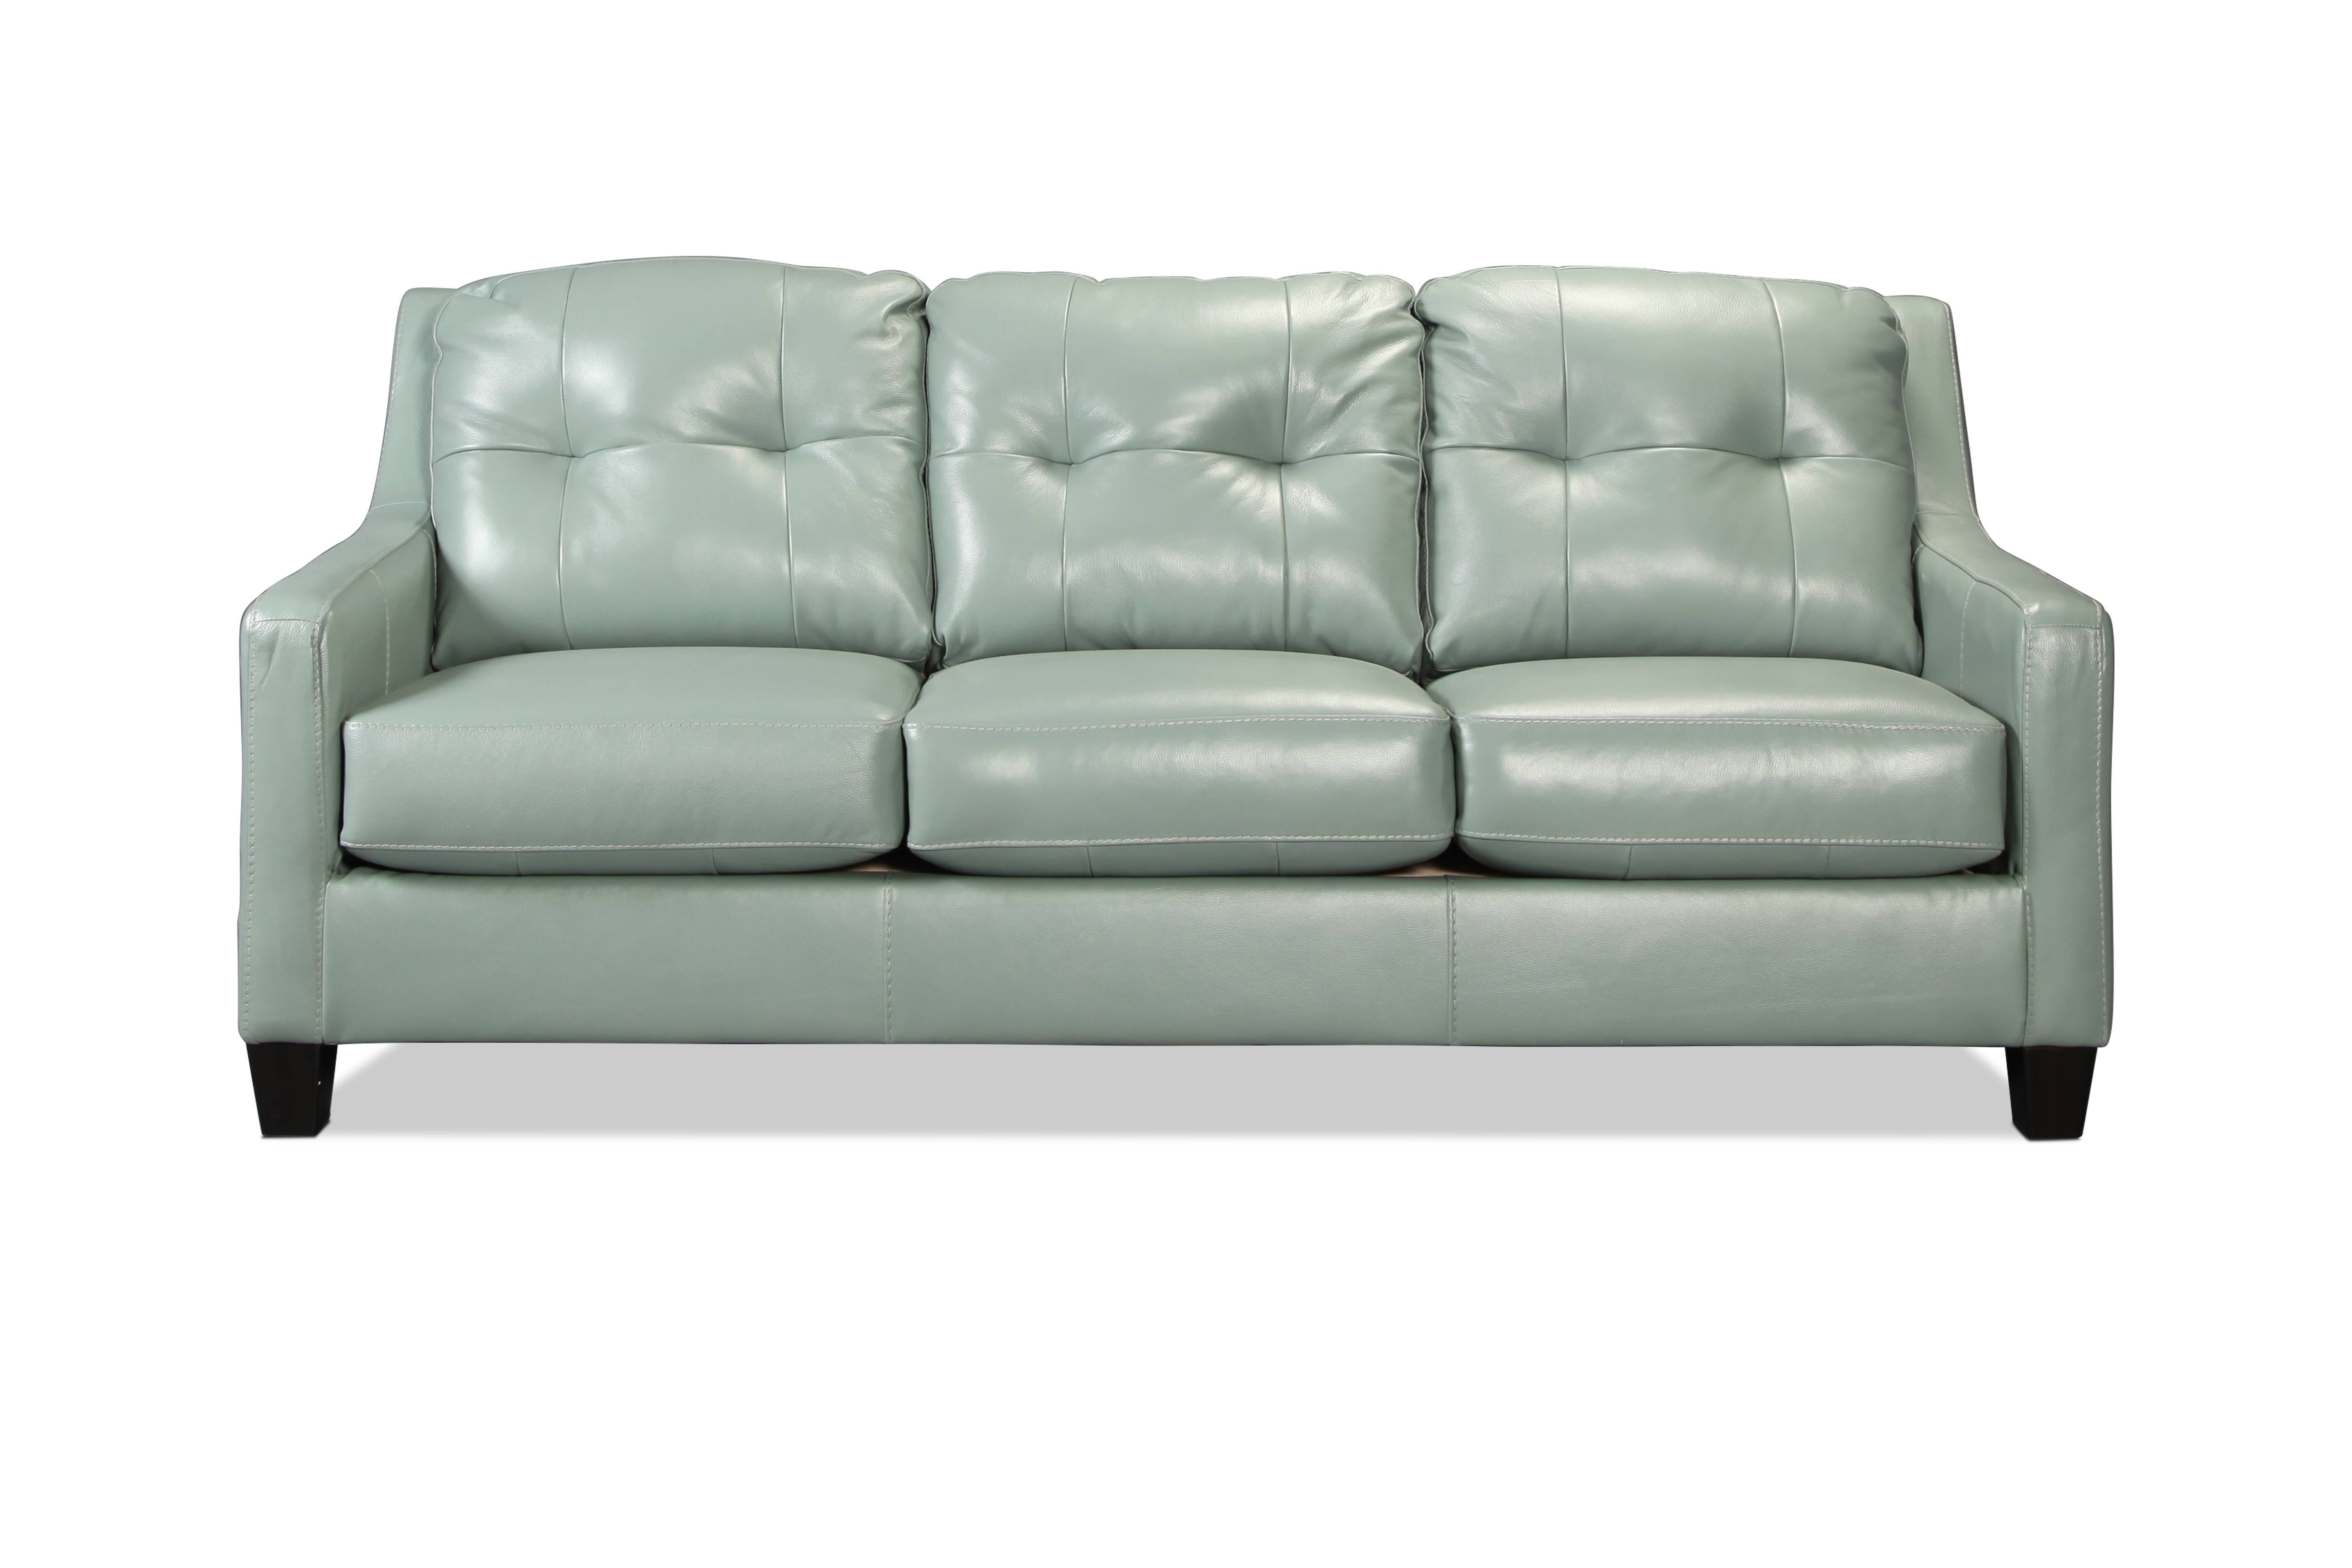 Sofas | Levin Furniture within 2X2 Corner Sofas (Image 23 of 30)